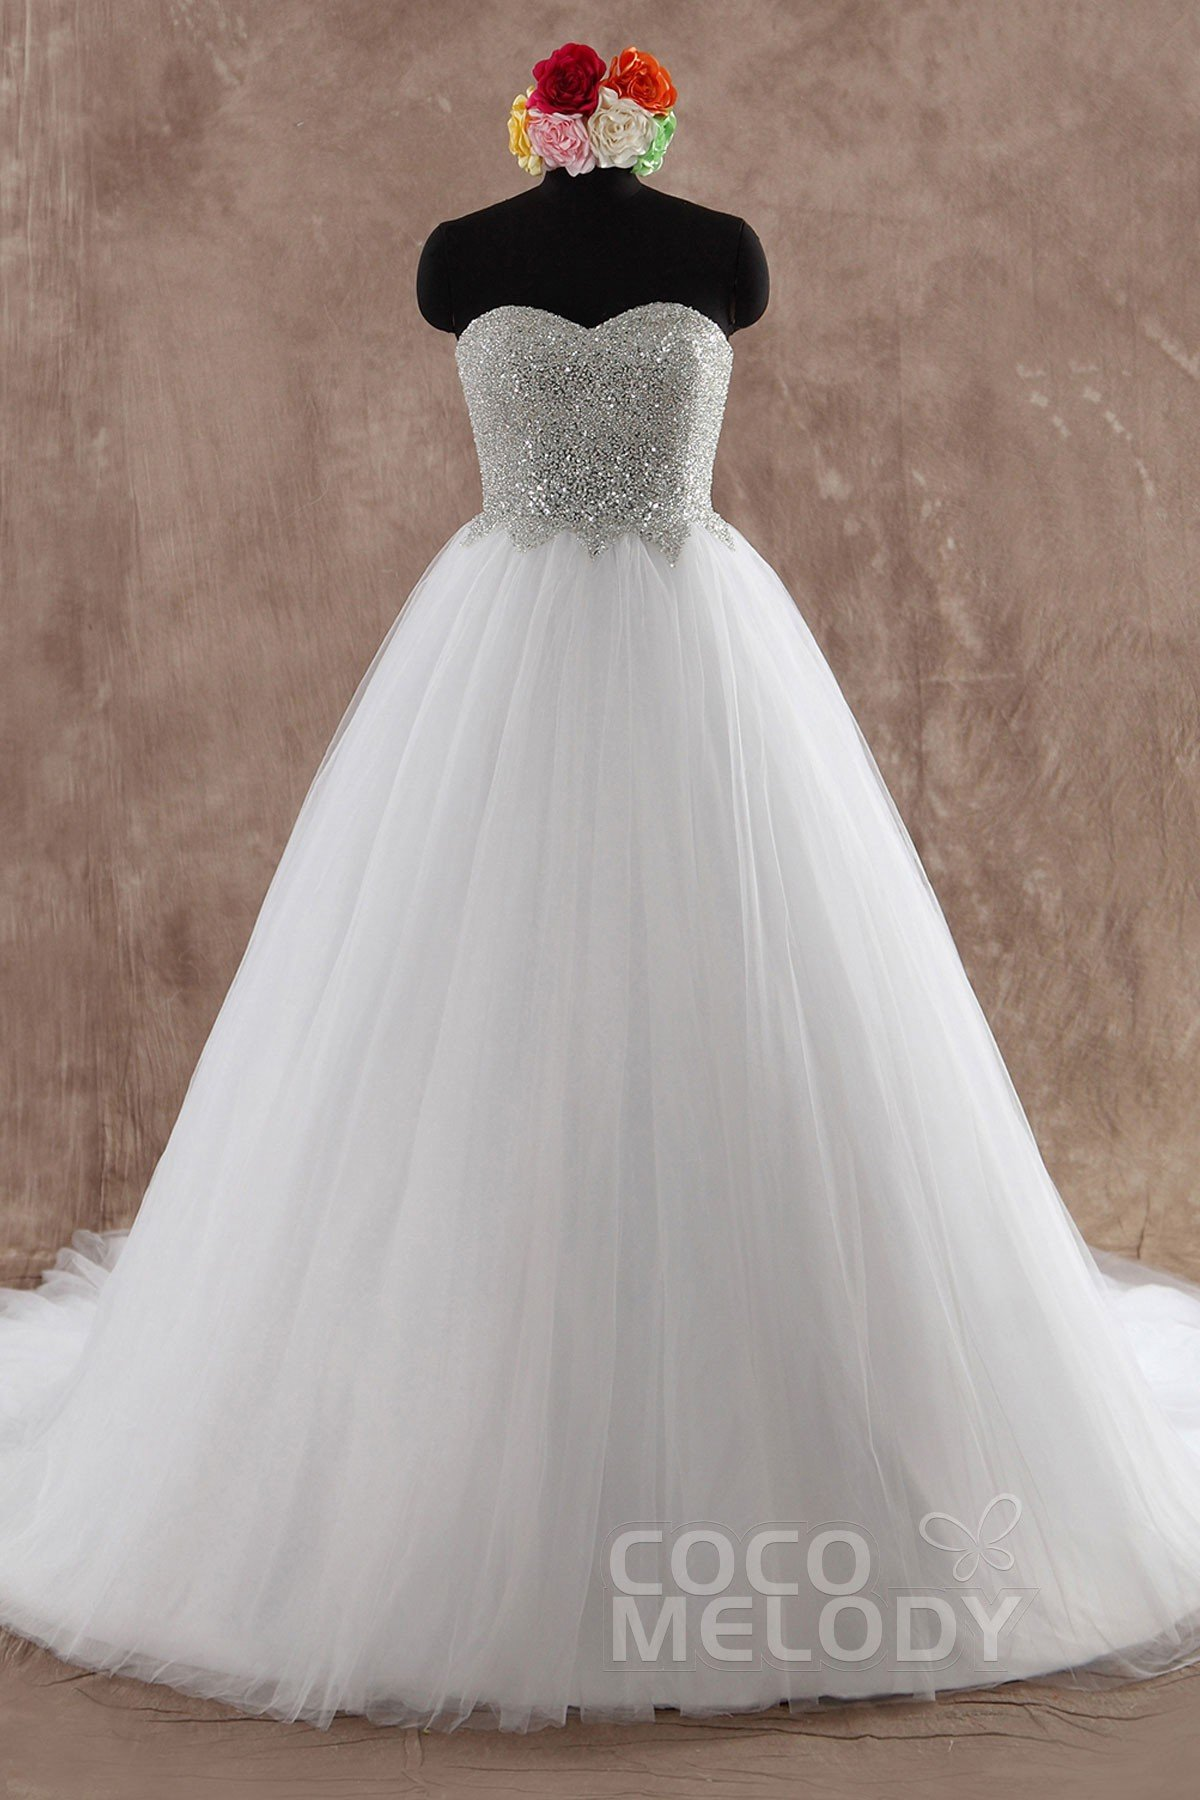 Cocomelody princess sweetheart chapel train wedding dress for Princess corset wedding dresses